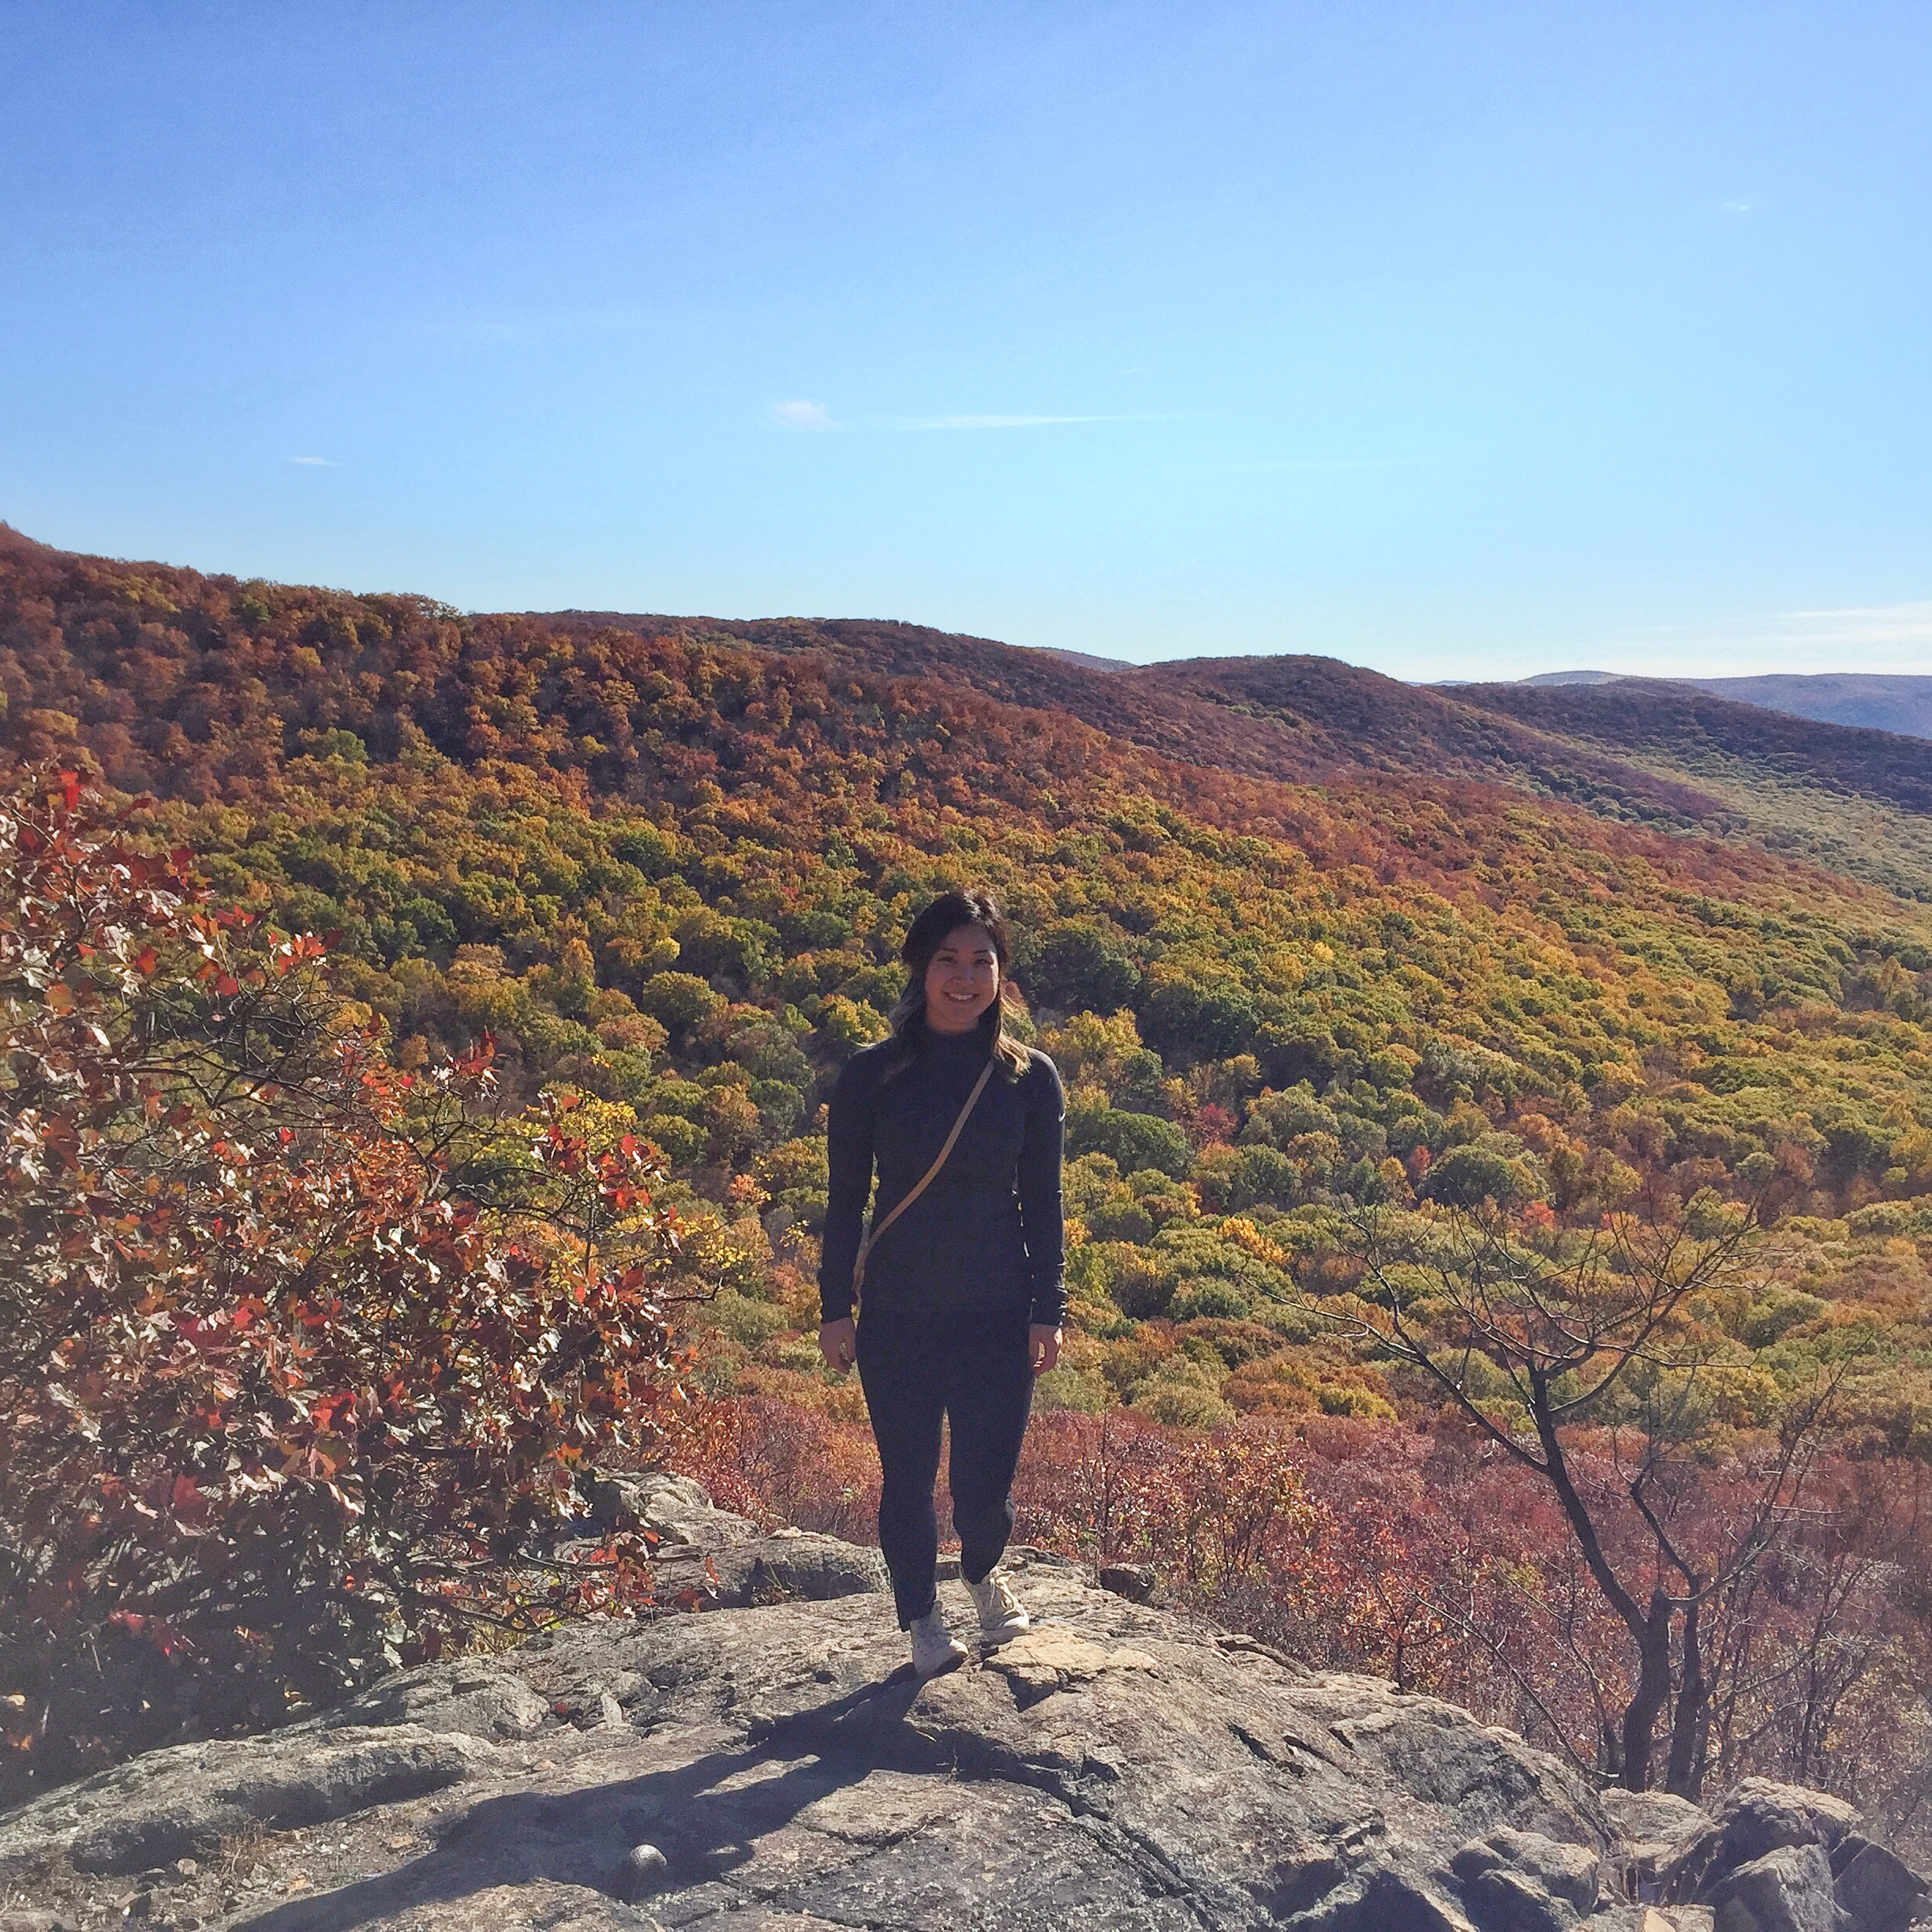 Summiting Mt. Beacon on a solo hike